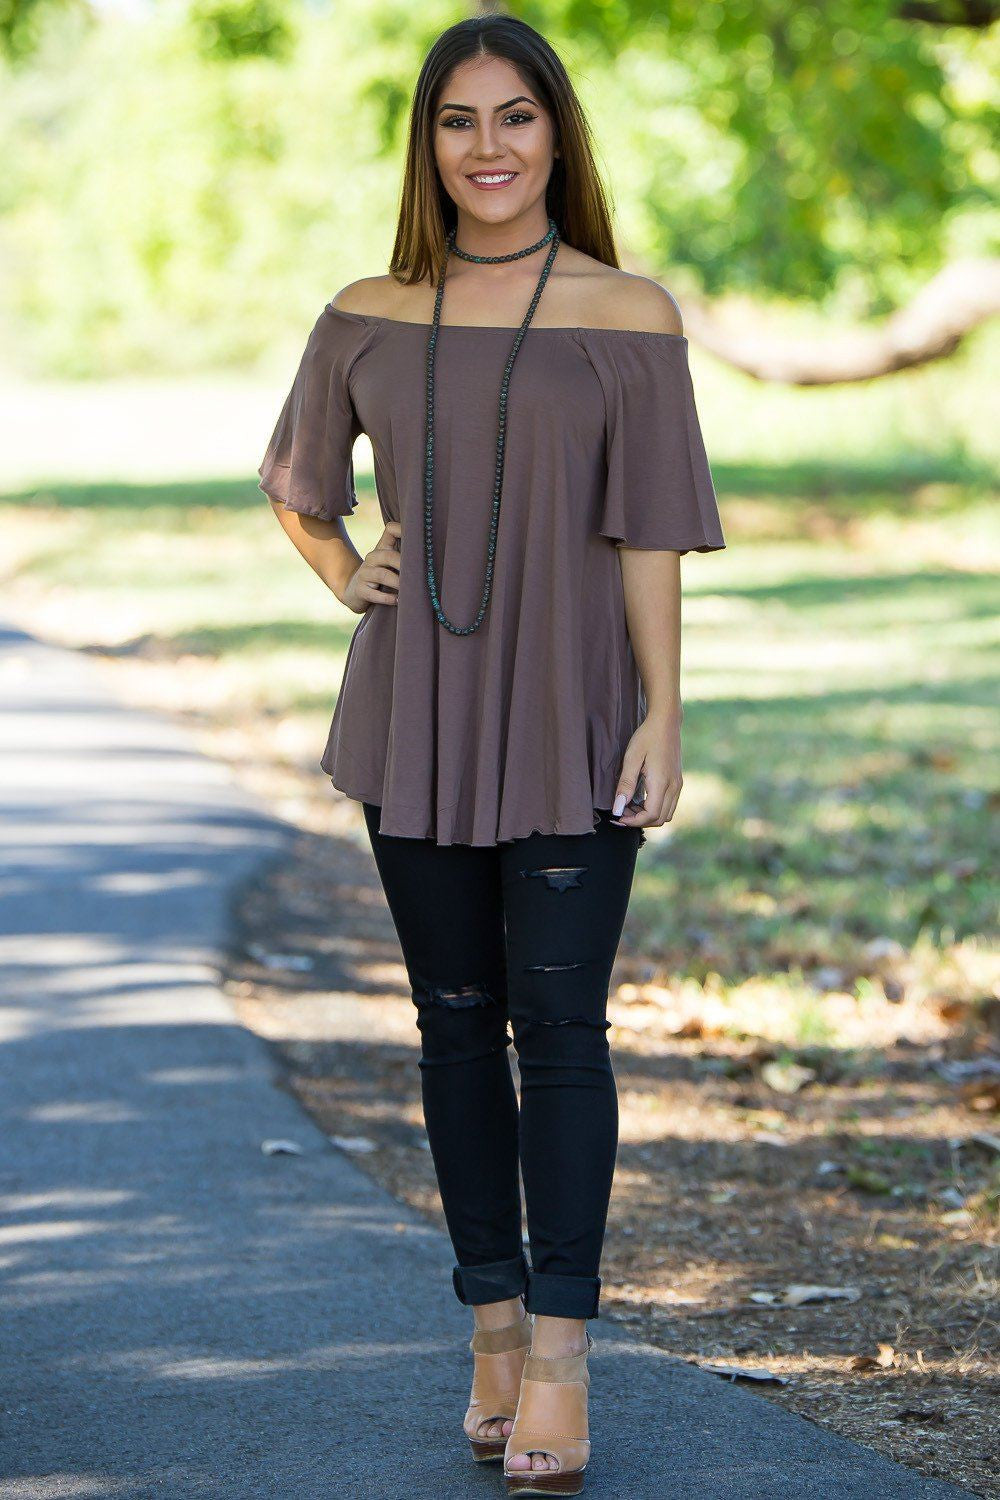 Off The Shoulder Short Sleeve Piko Top - Brown - Piko Clothing